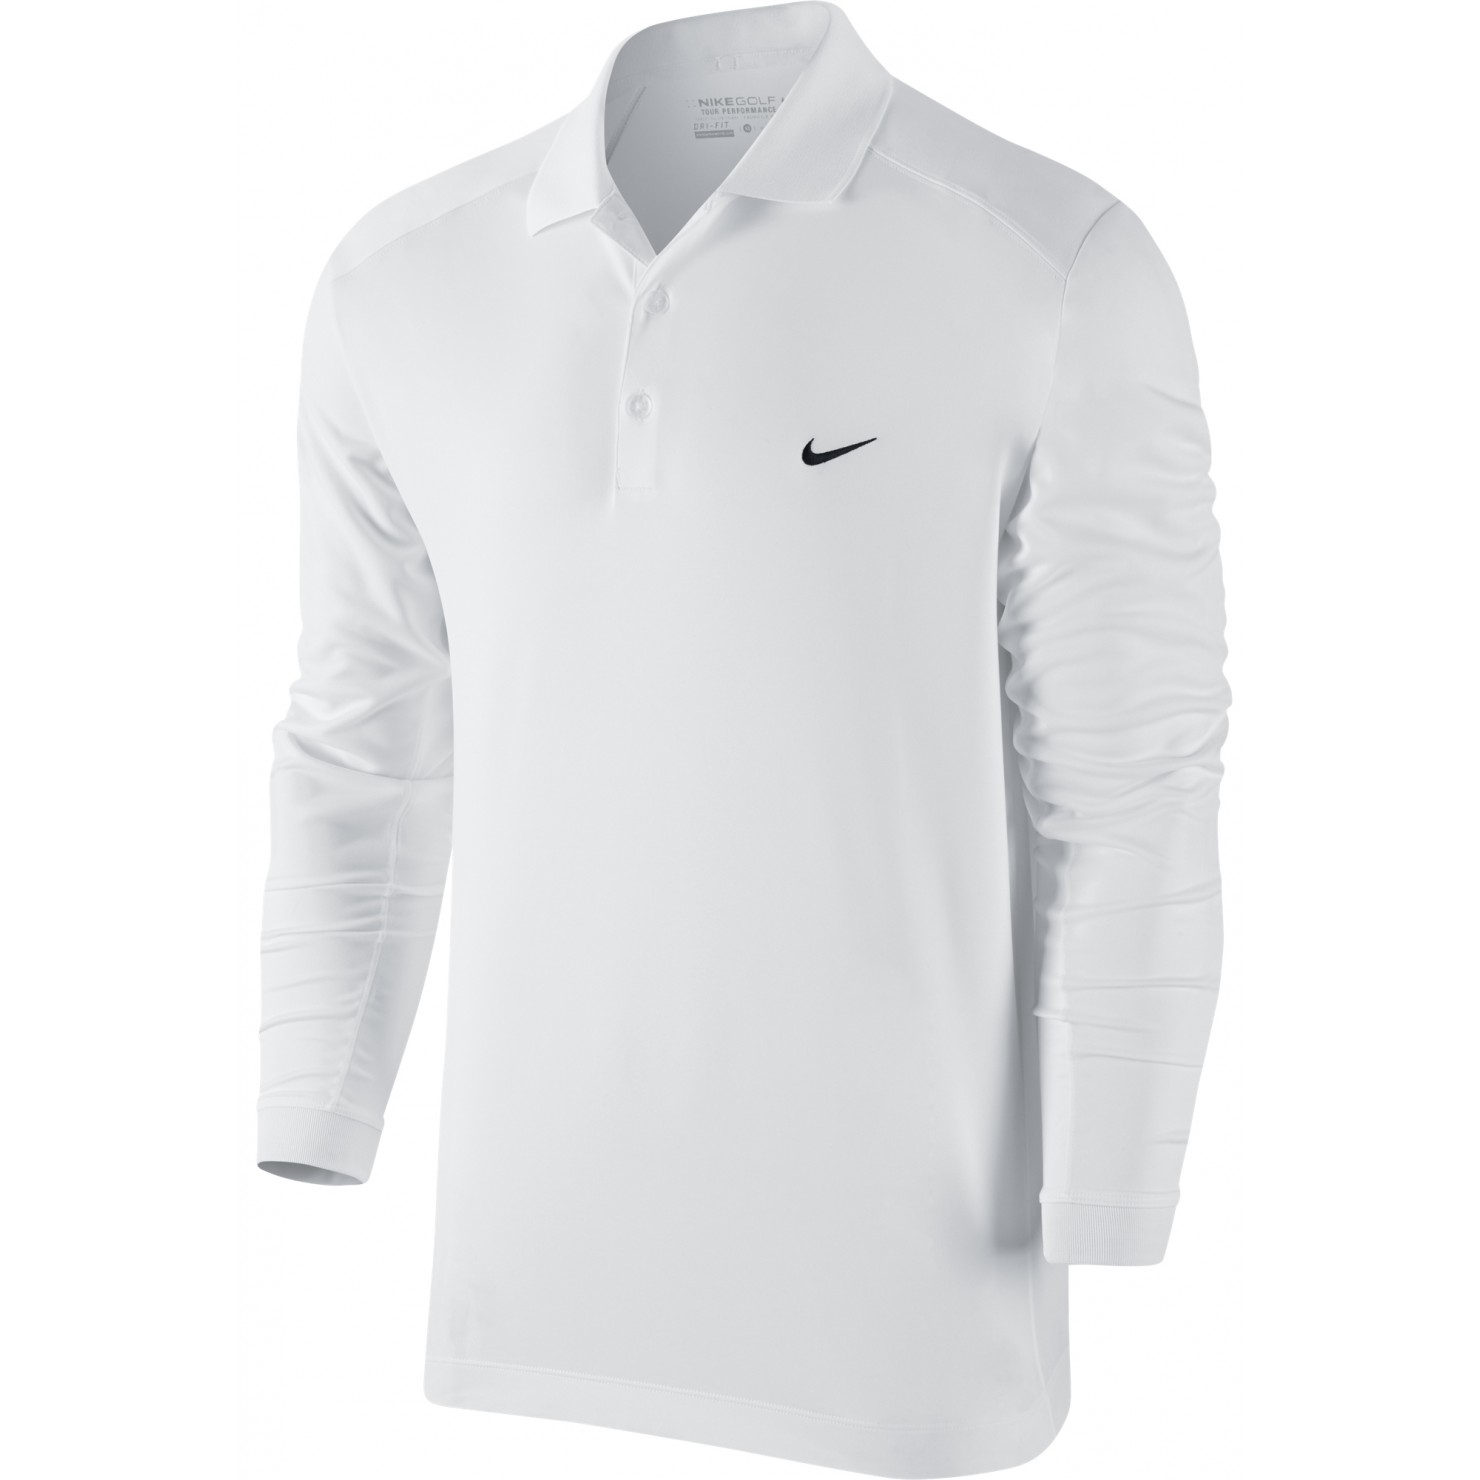 Nike Victory Long Sleeve Polo Shirt – WHITE – Blessey Marine